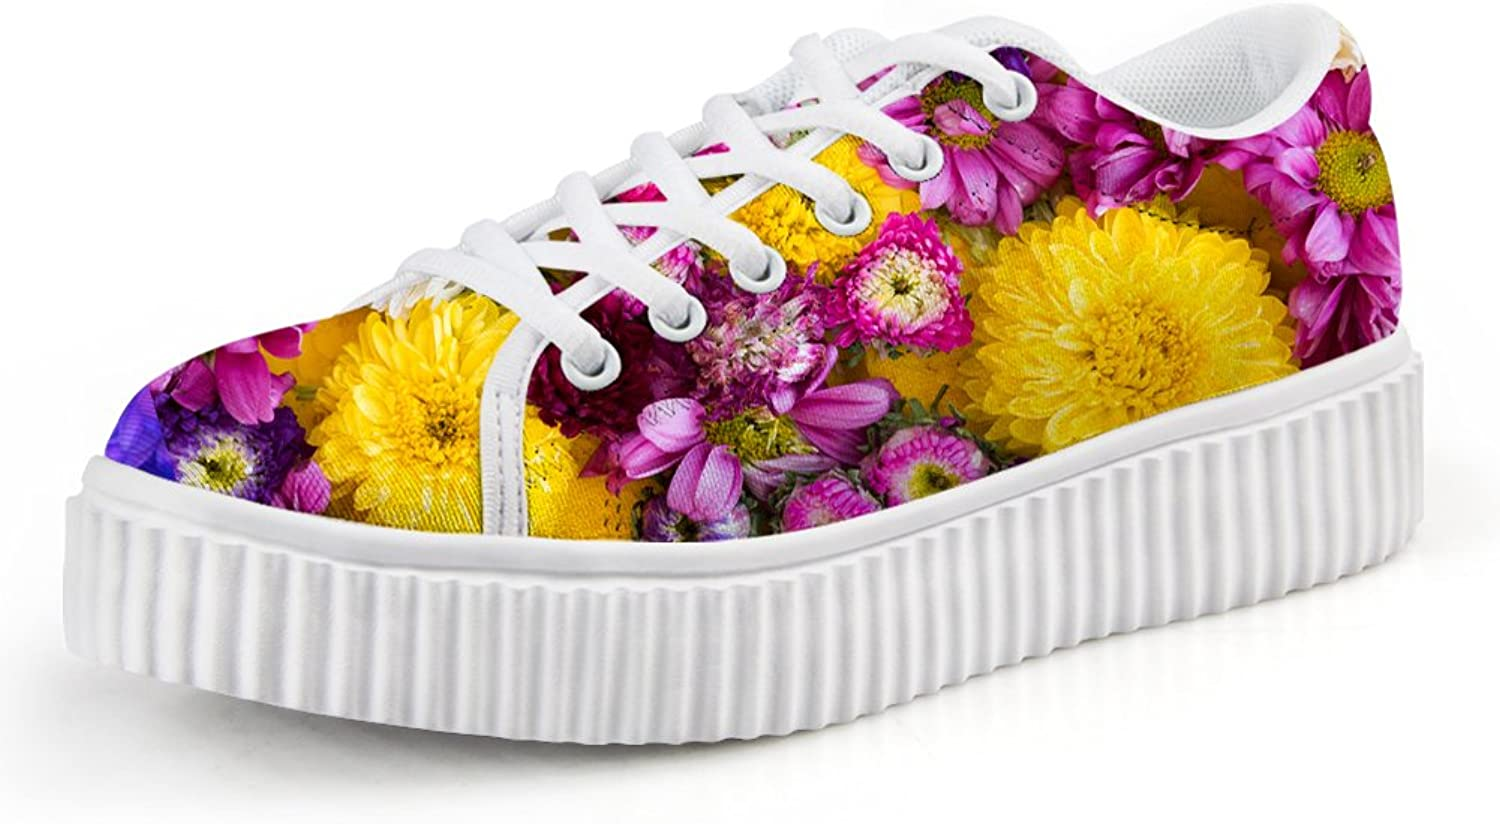 Chaqlin Beauty Floral Platform shoes Casual Walking Sneaker Size 37